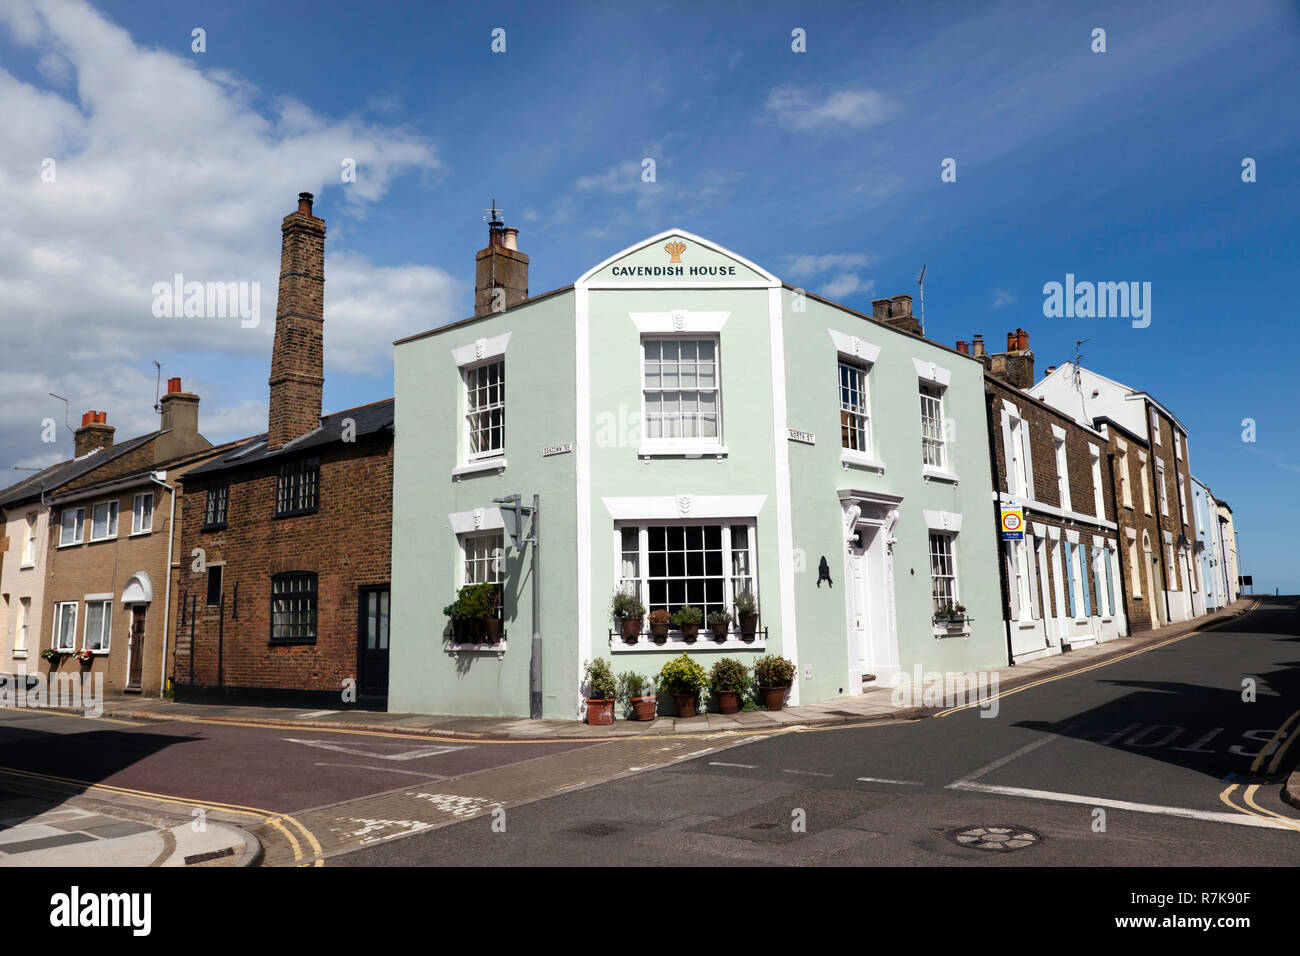 Cavendish House, at the junction of Sandown Road and North Street, Deal, Kent Stock Photo